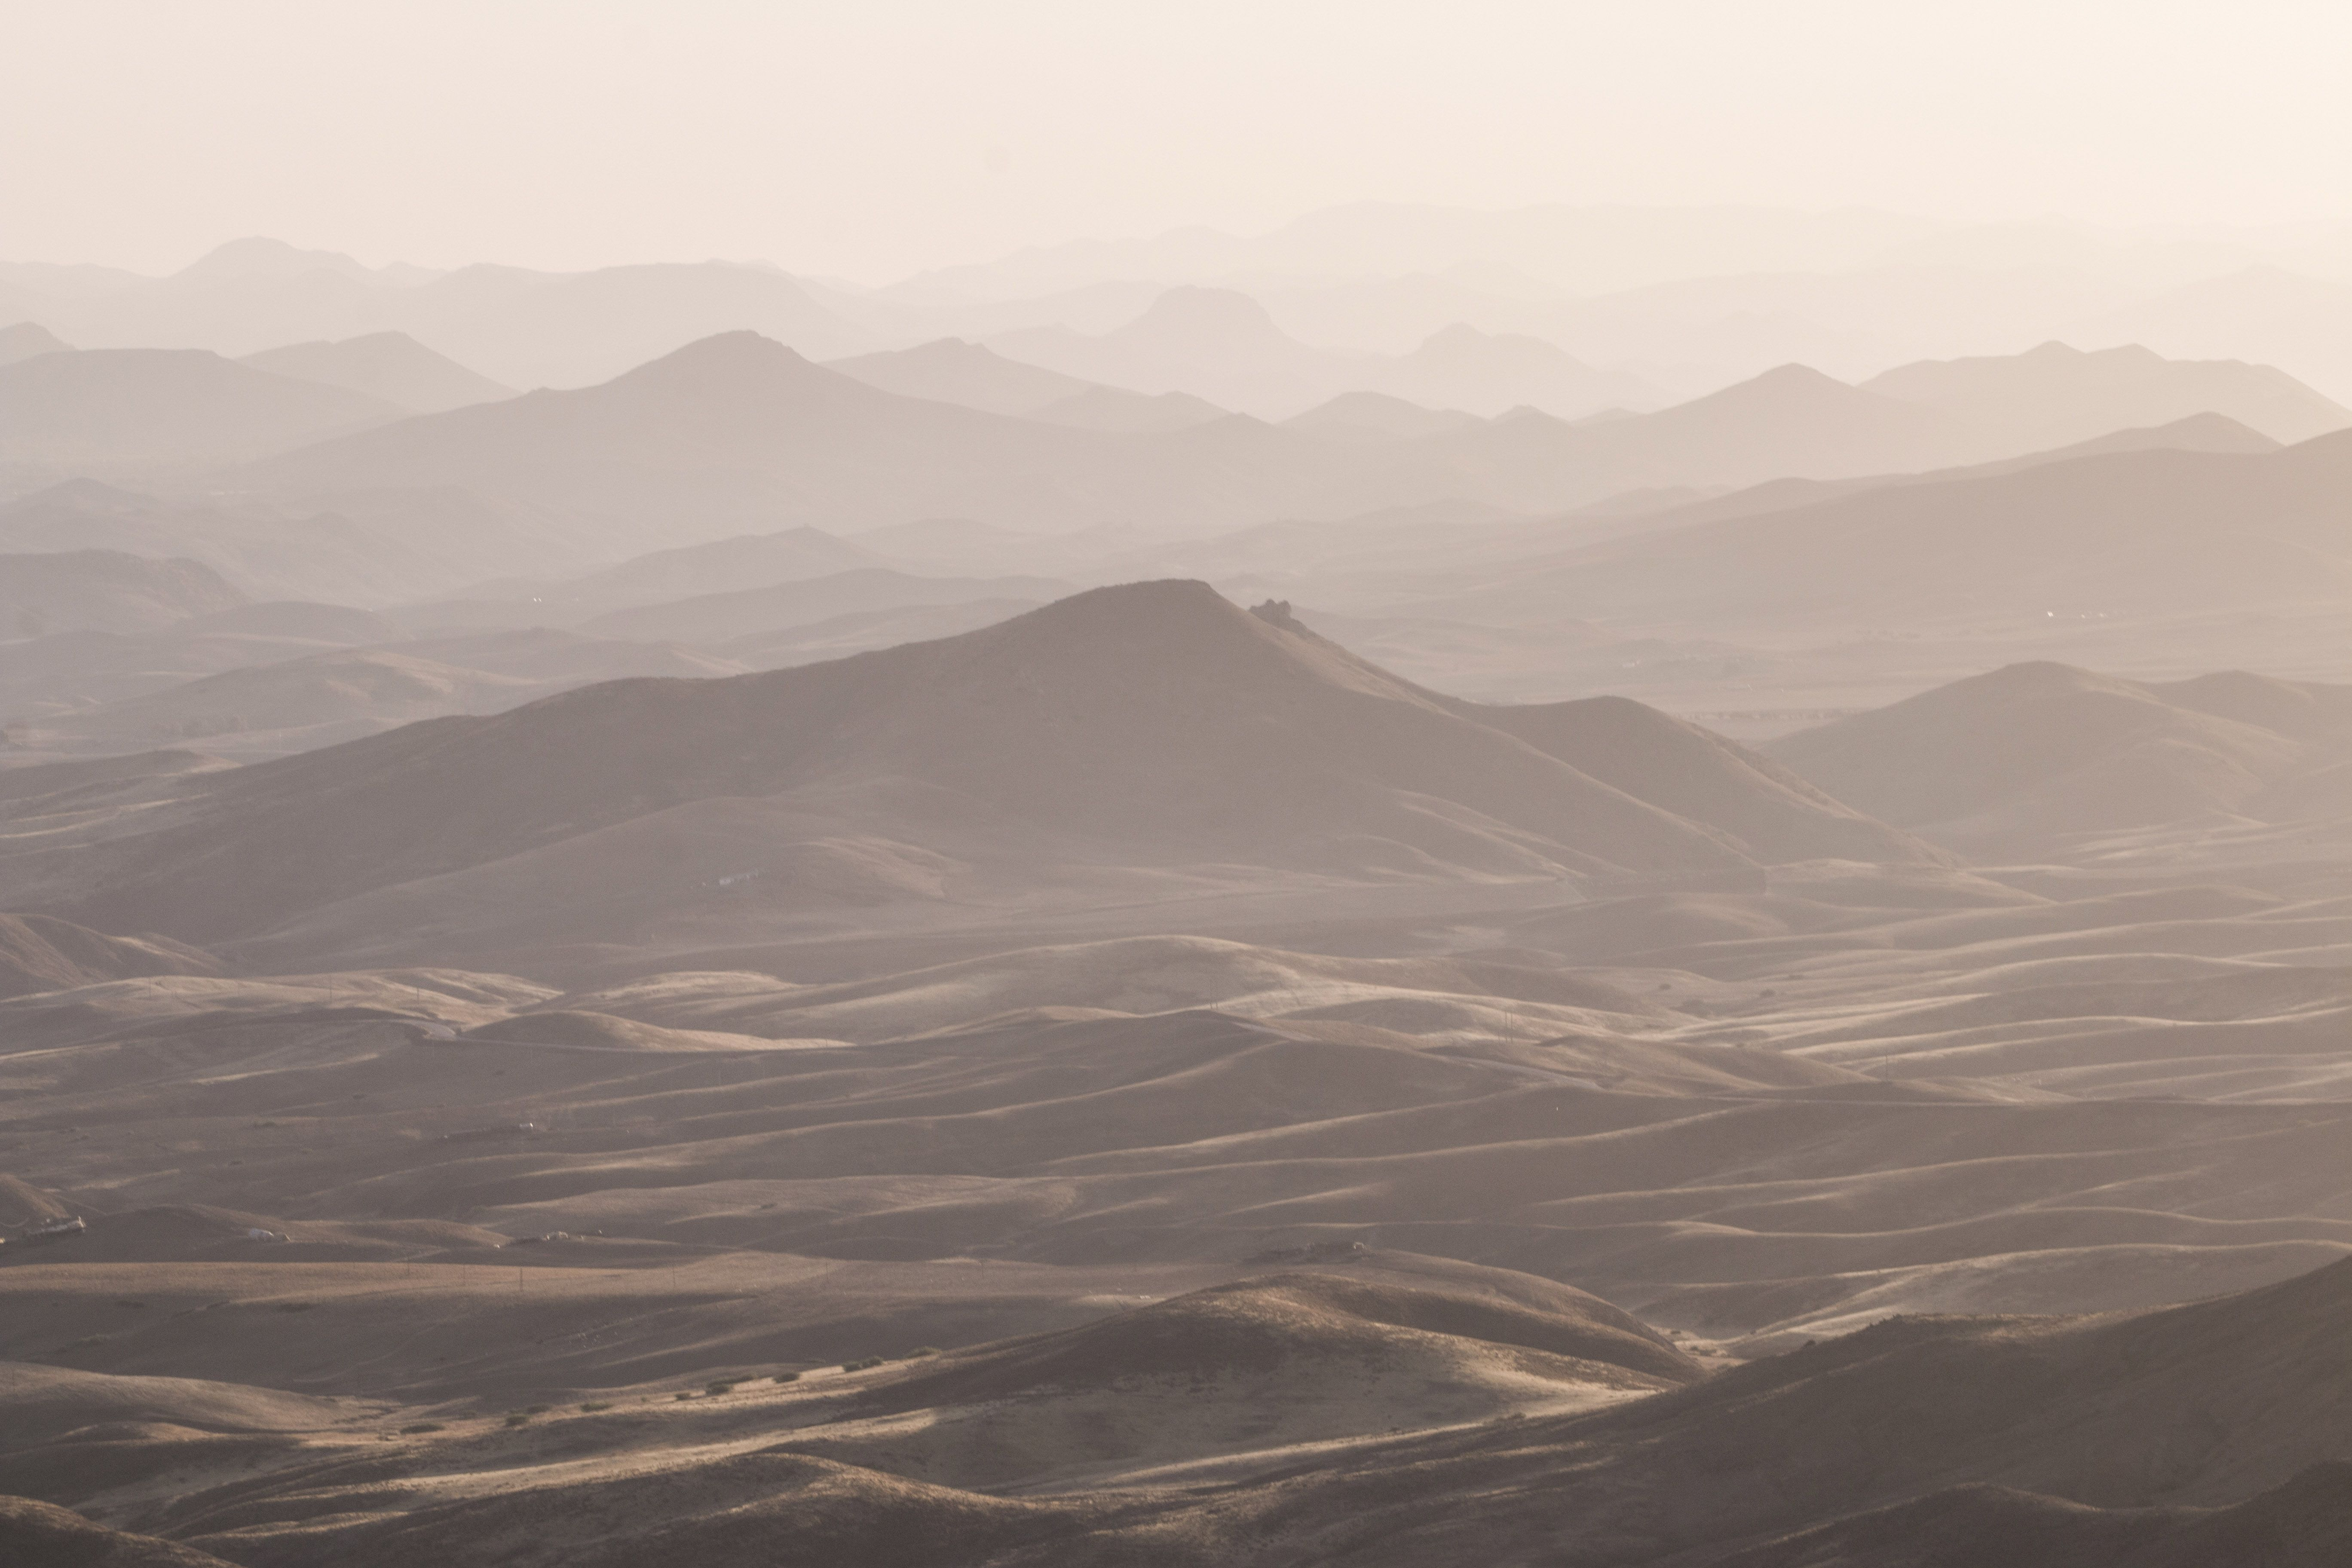 A view of misty atlas mountains stretching into the distance